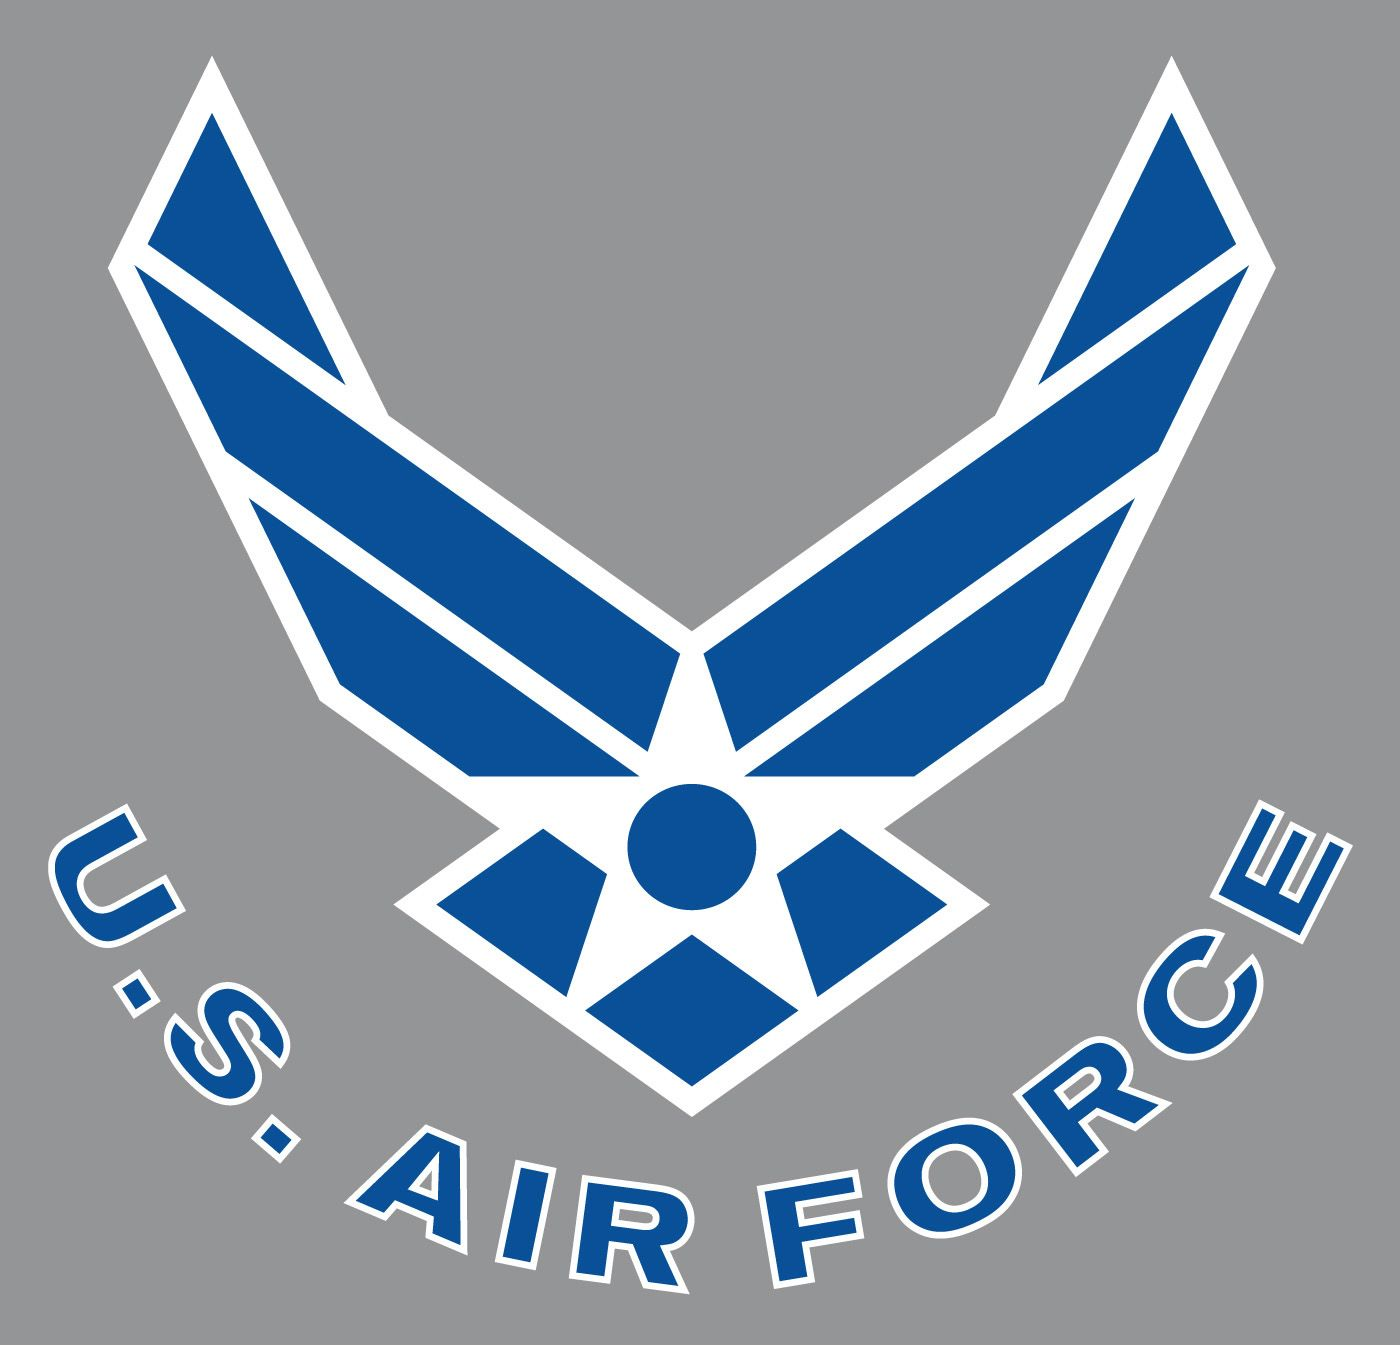 Af emblem clipart banner library library Air force emblems clipart 5 » Clipart Station banner library library